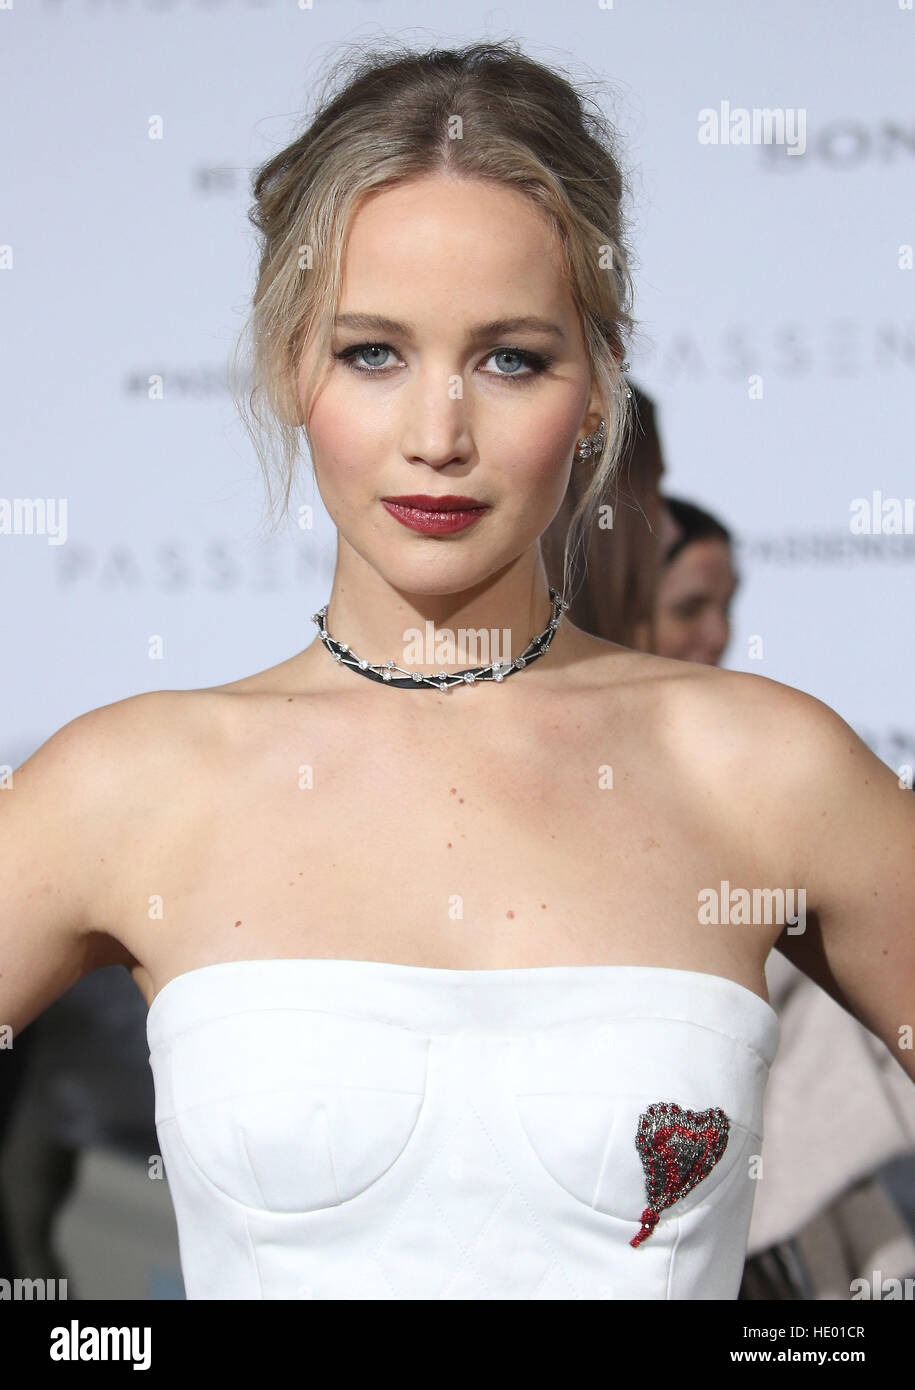 Westwood, CA, USA. 14 Décembre, 2016. 14 Décembre 2016 - Westwood, Californie - Jennifer Lawrence. ''Passagers'' Photo Stock